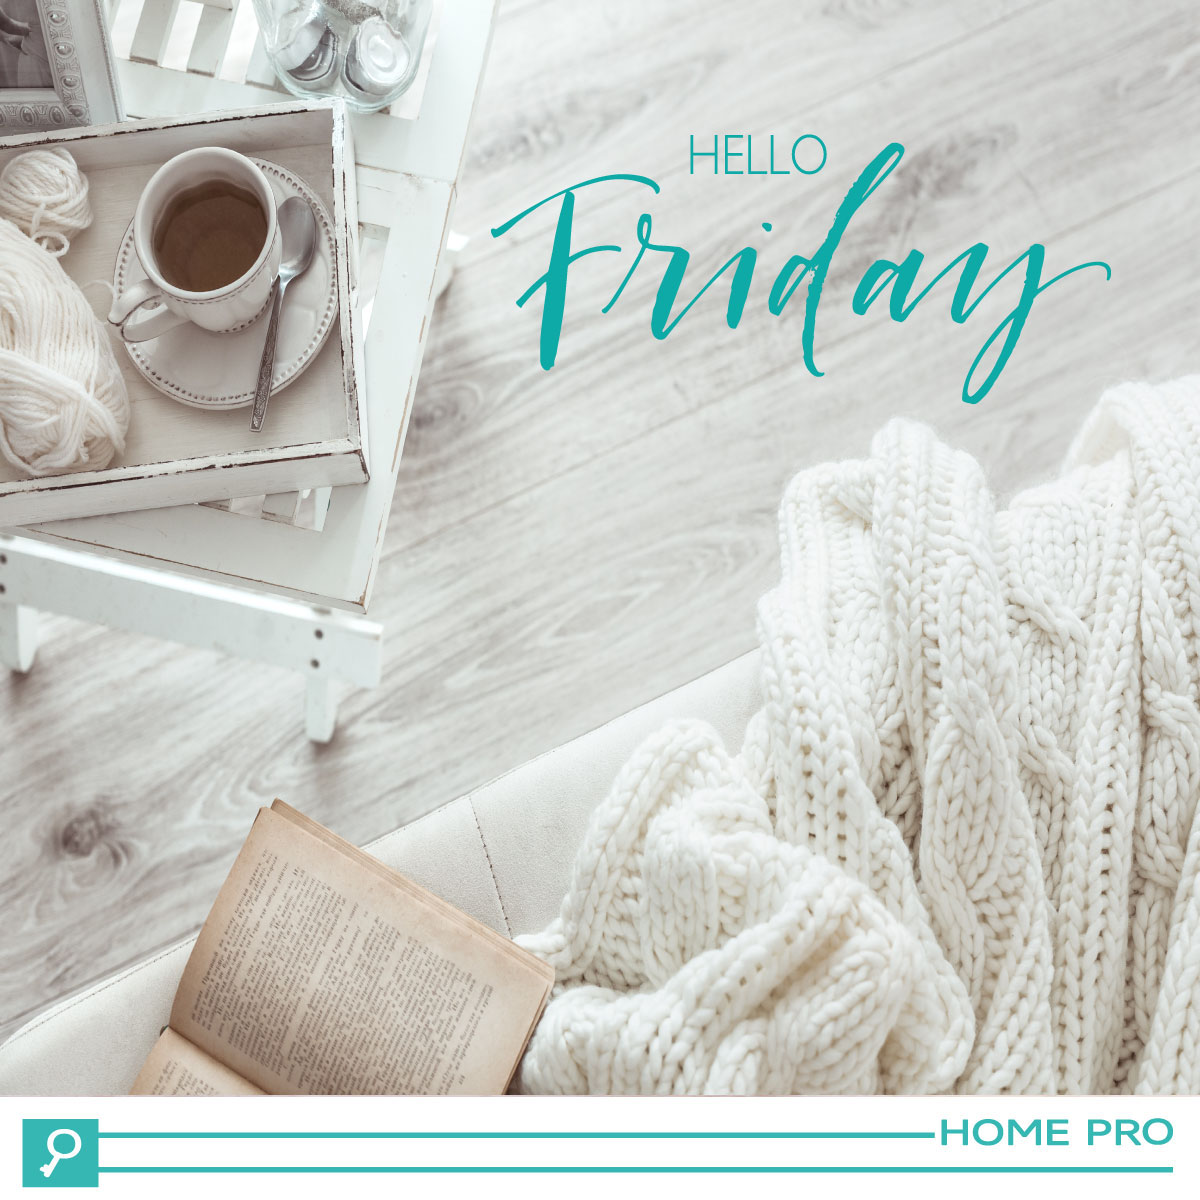 Today is a perfect day to be happy! Happy weekend  #weekend #saturday #sunday #goodvibes #homeprolisting #realestate #advertising #agents #sellers #brokers #developers #buyers #properties #sale #rent #investment #construction #project #building #apartment #house #villa #chalet